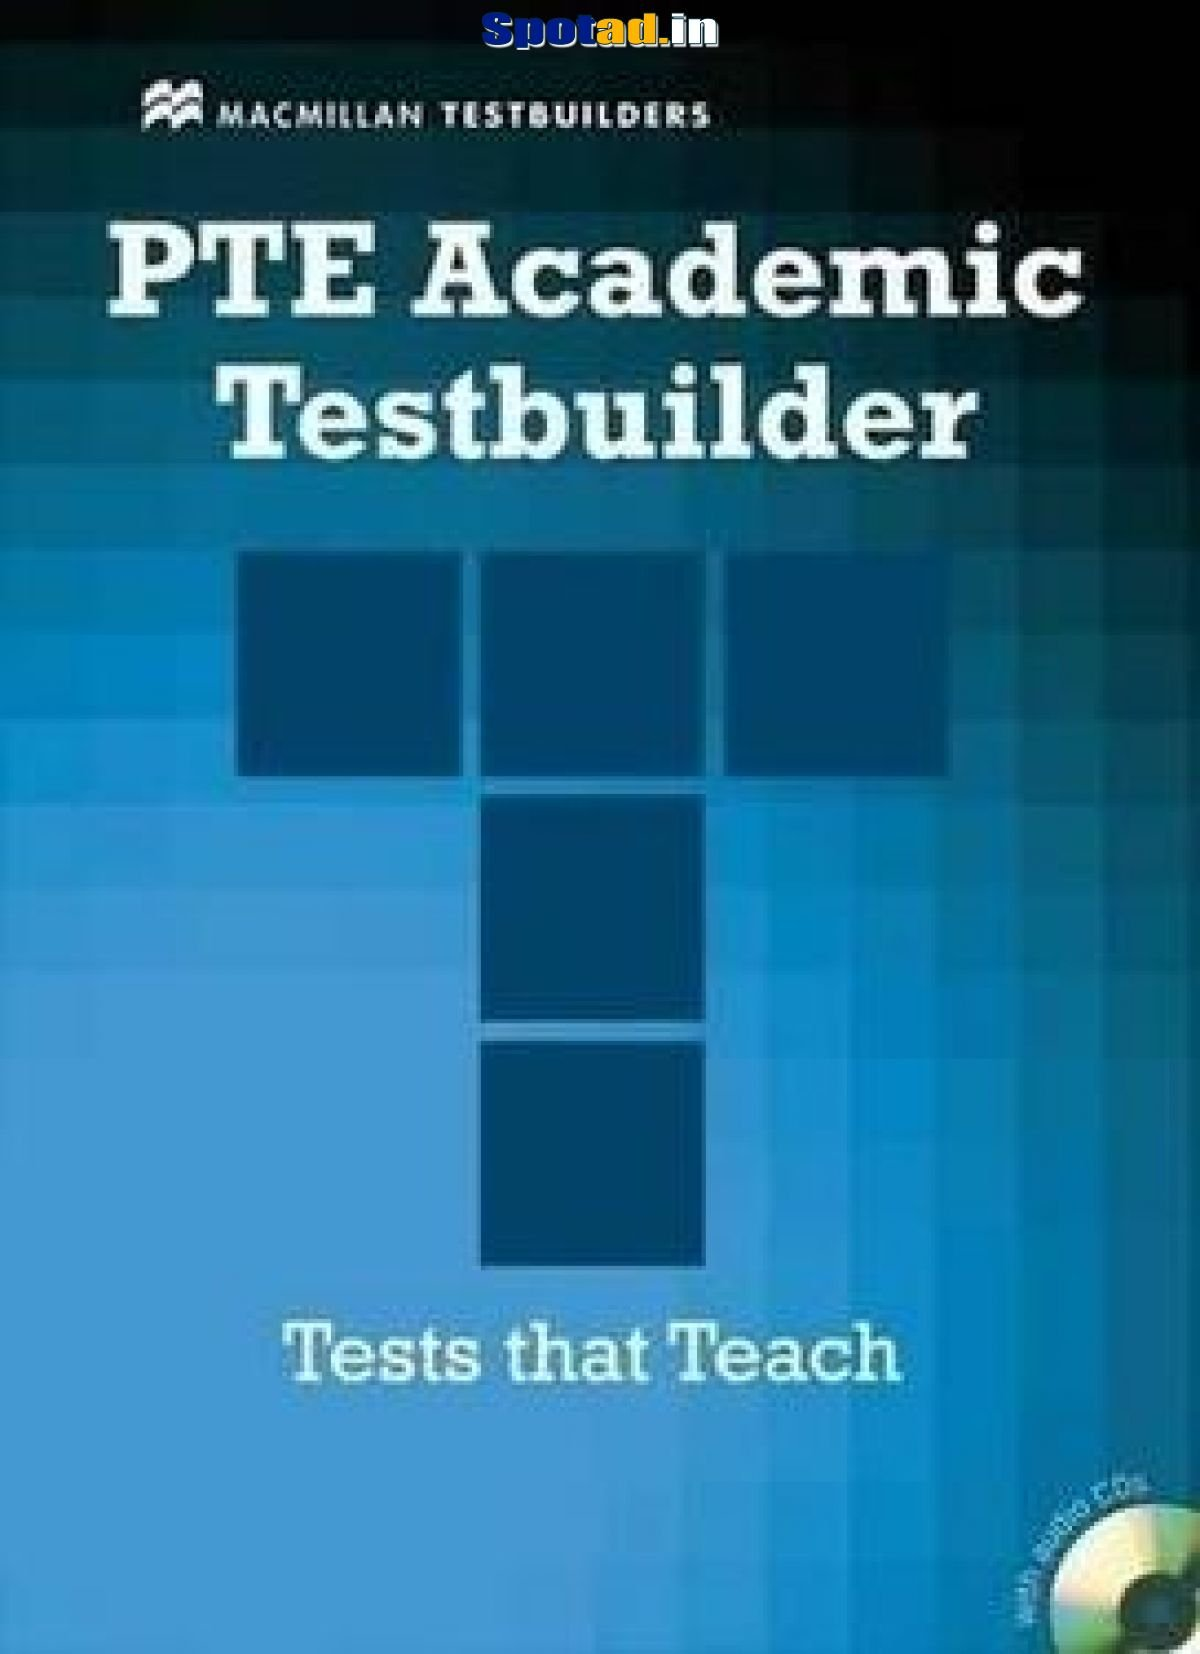 Buy PTE Academic Testbuilder (with Audio CD Pack) (Macmillan